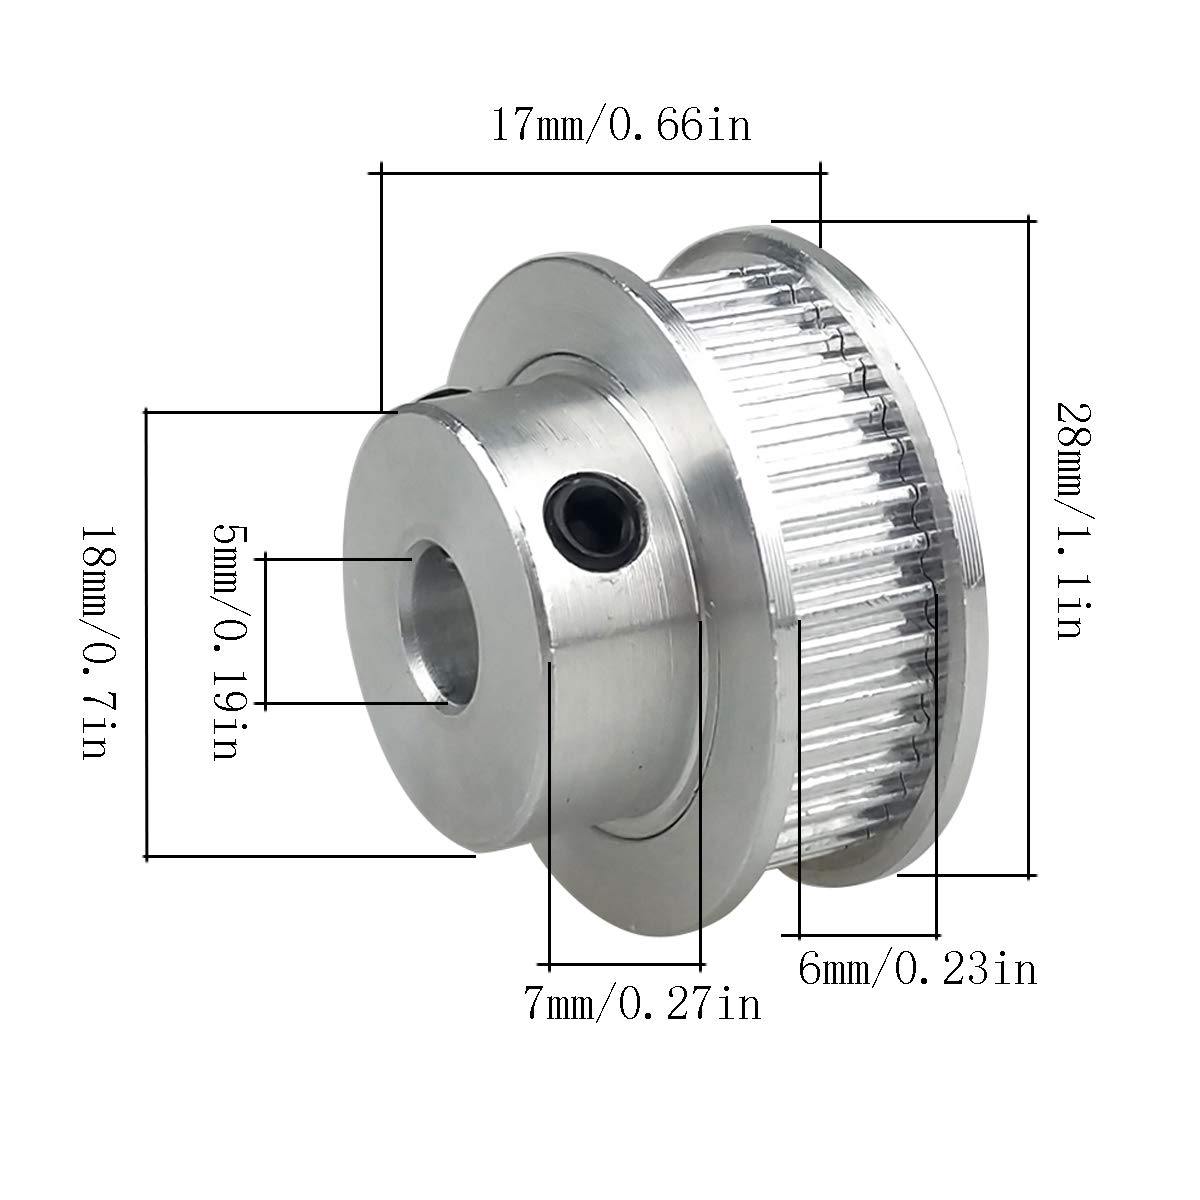 Pack-of-2 GT2 Timing Belt Pulley Synchronous Gear Aluminium Wheel for 3D Printer 40 Teeth 6mm Width 5mm Bore